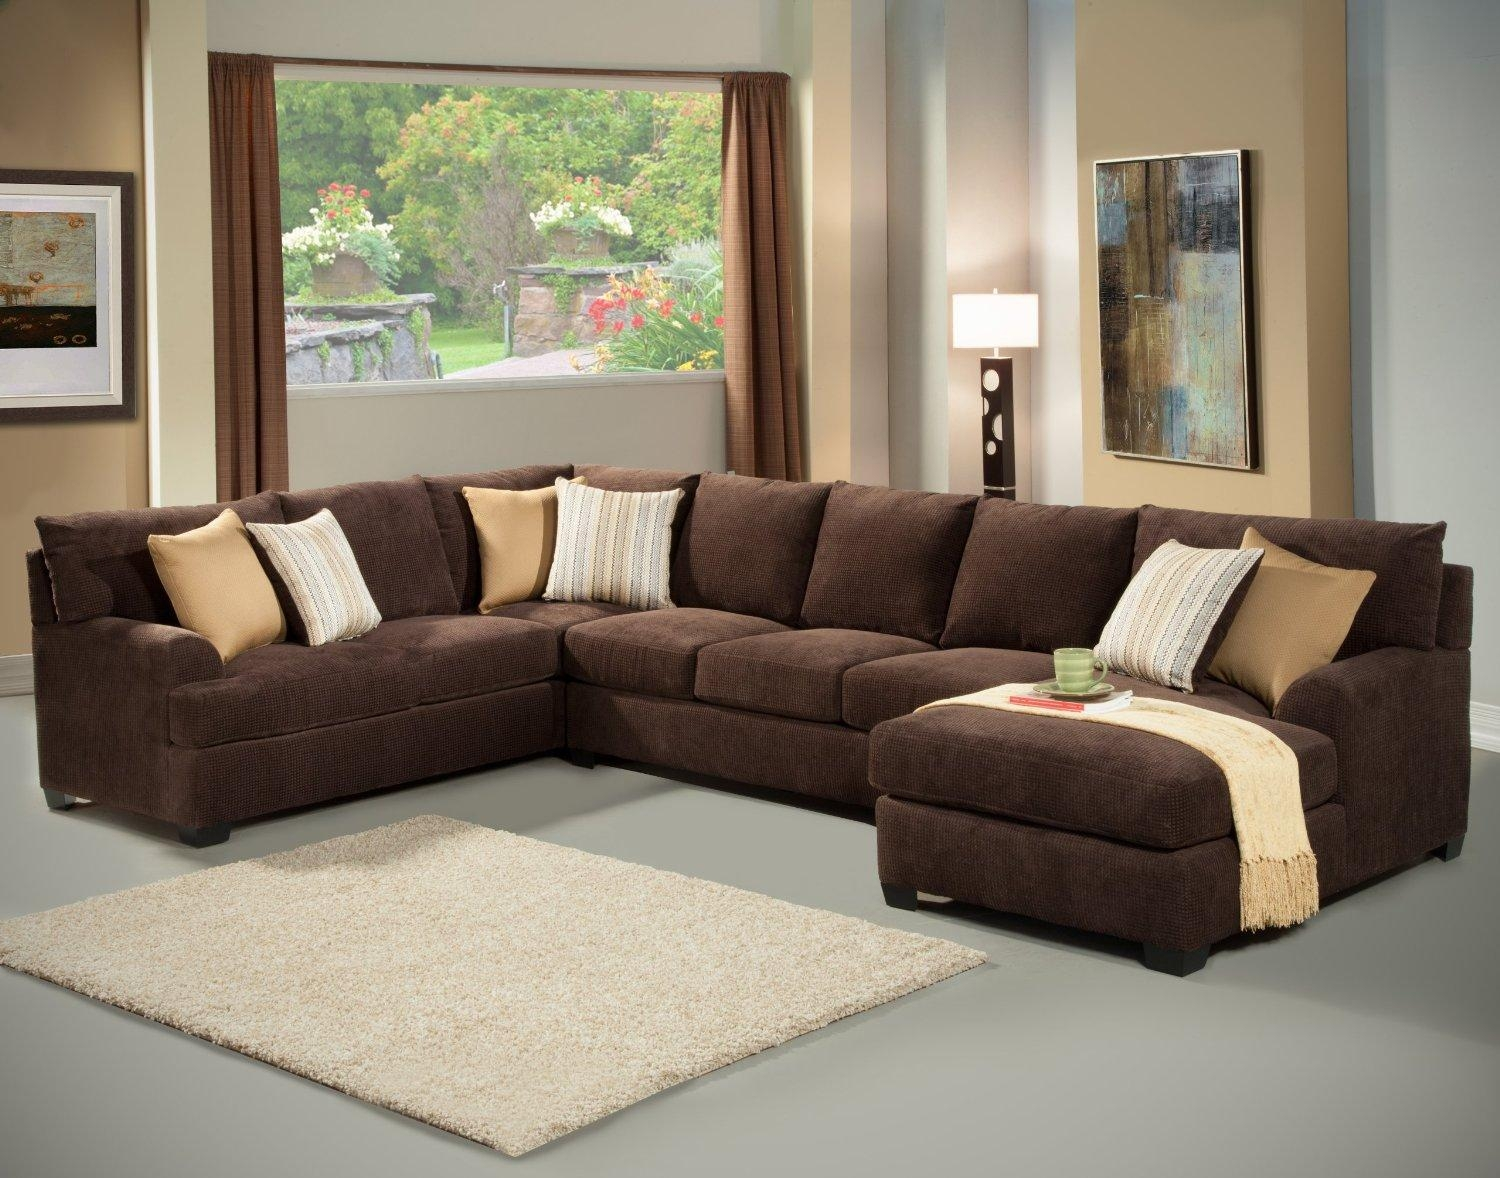 Brown Sectional Sofa With Chaise With Bradley Sectional Sofas (View 20 of 20)